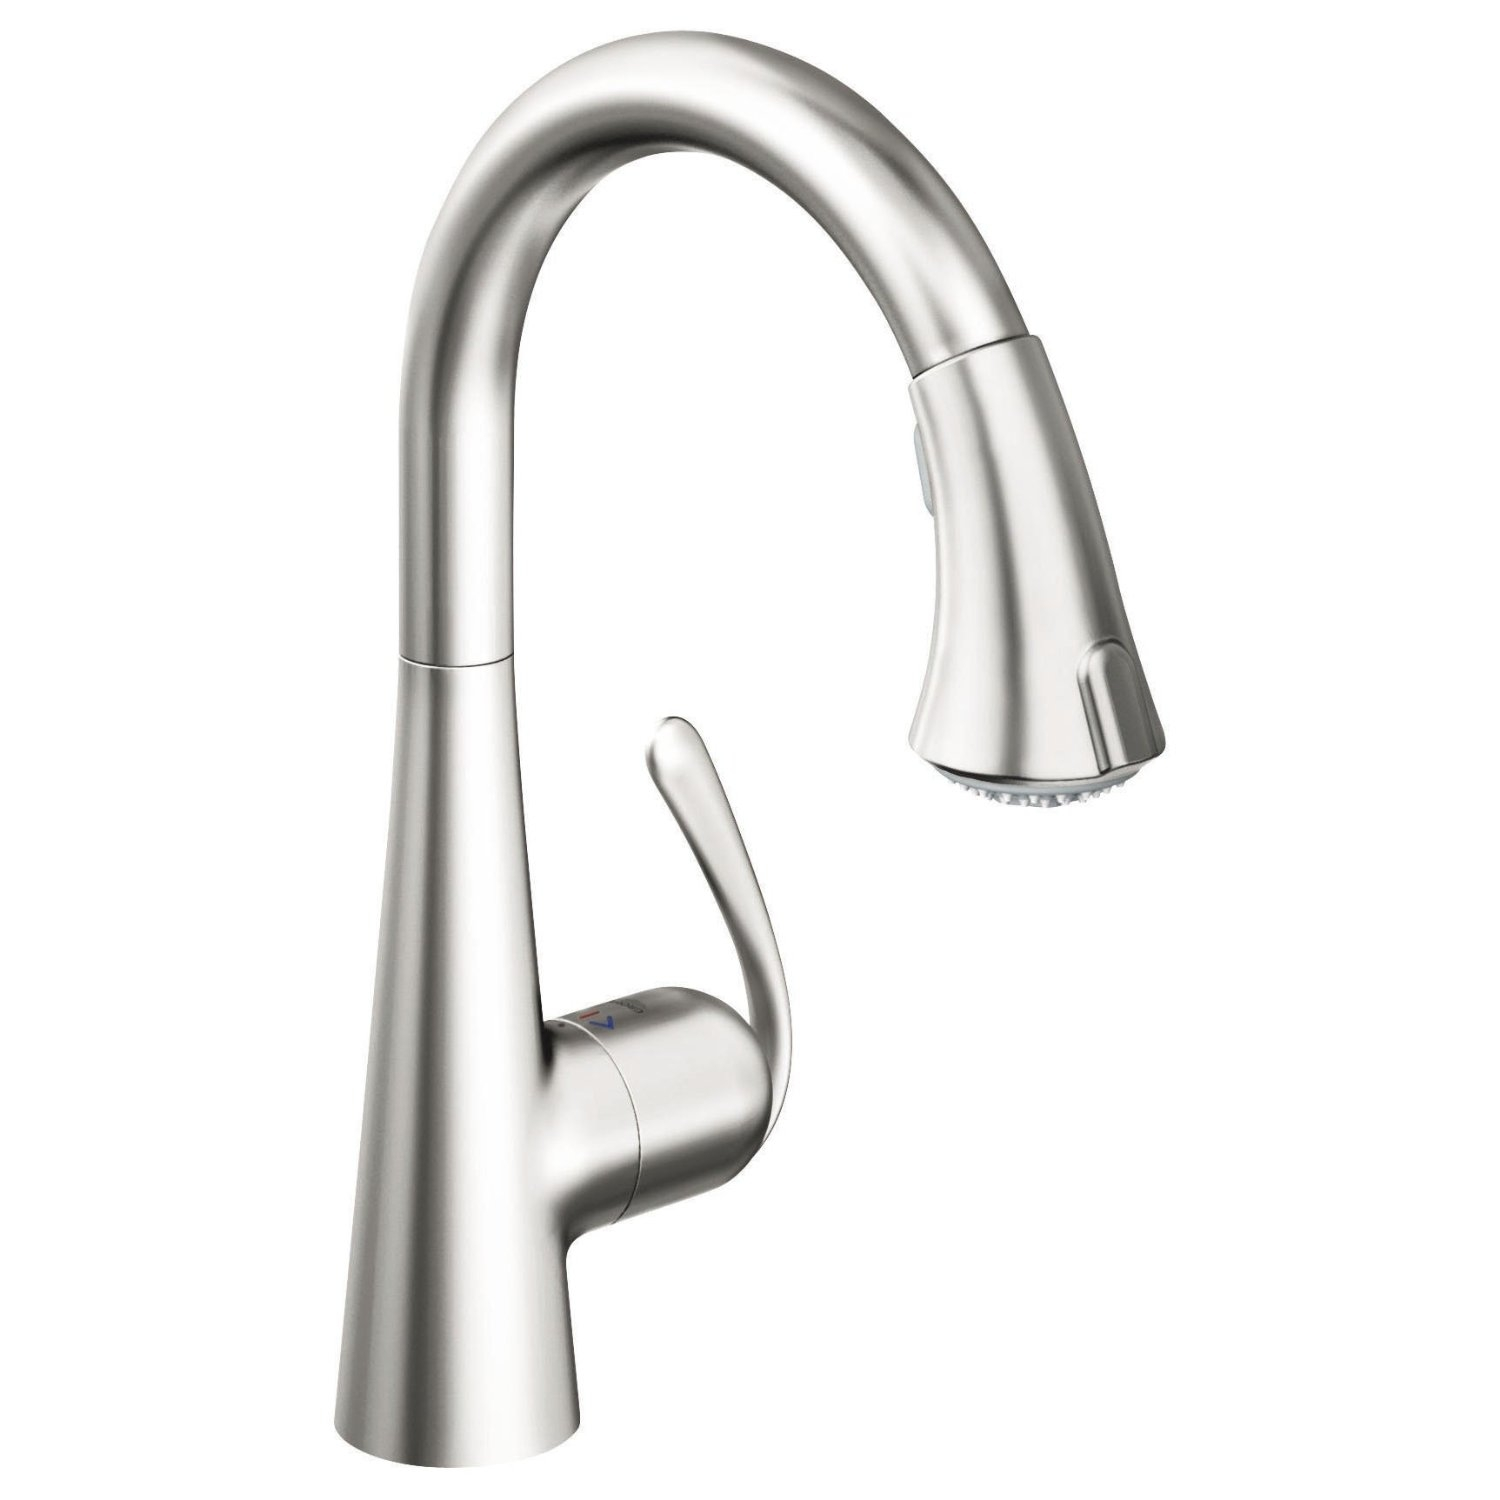 Ideas, hansgrohe kitchen faucet hose hansgrohe kitchen faucet hose decor fabulous grohe faucets for contemporary kitchen decoration 1500 x 1500  .